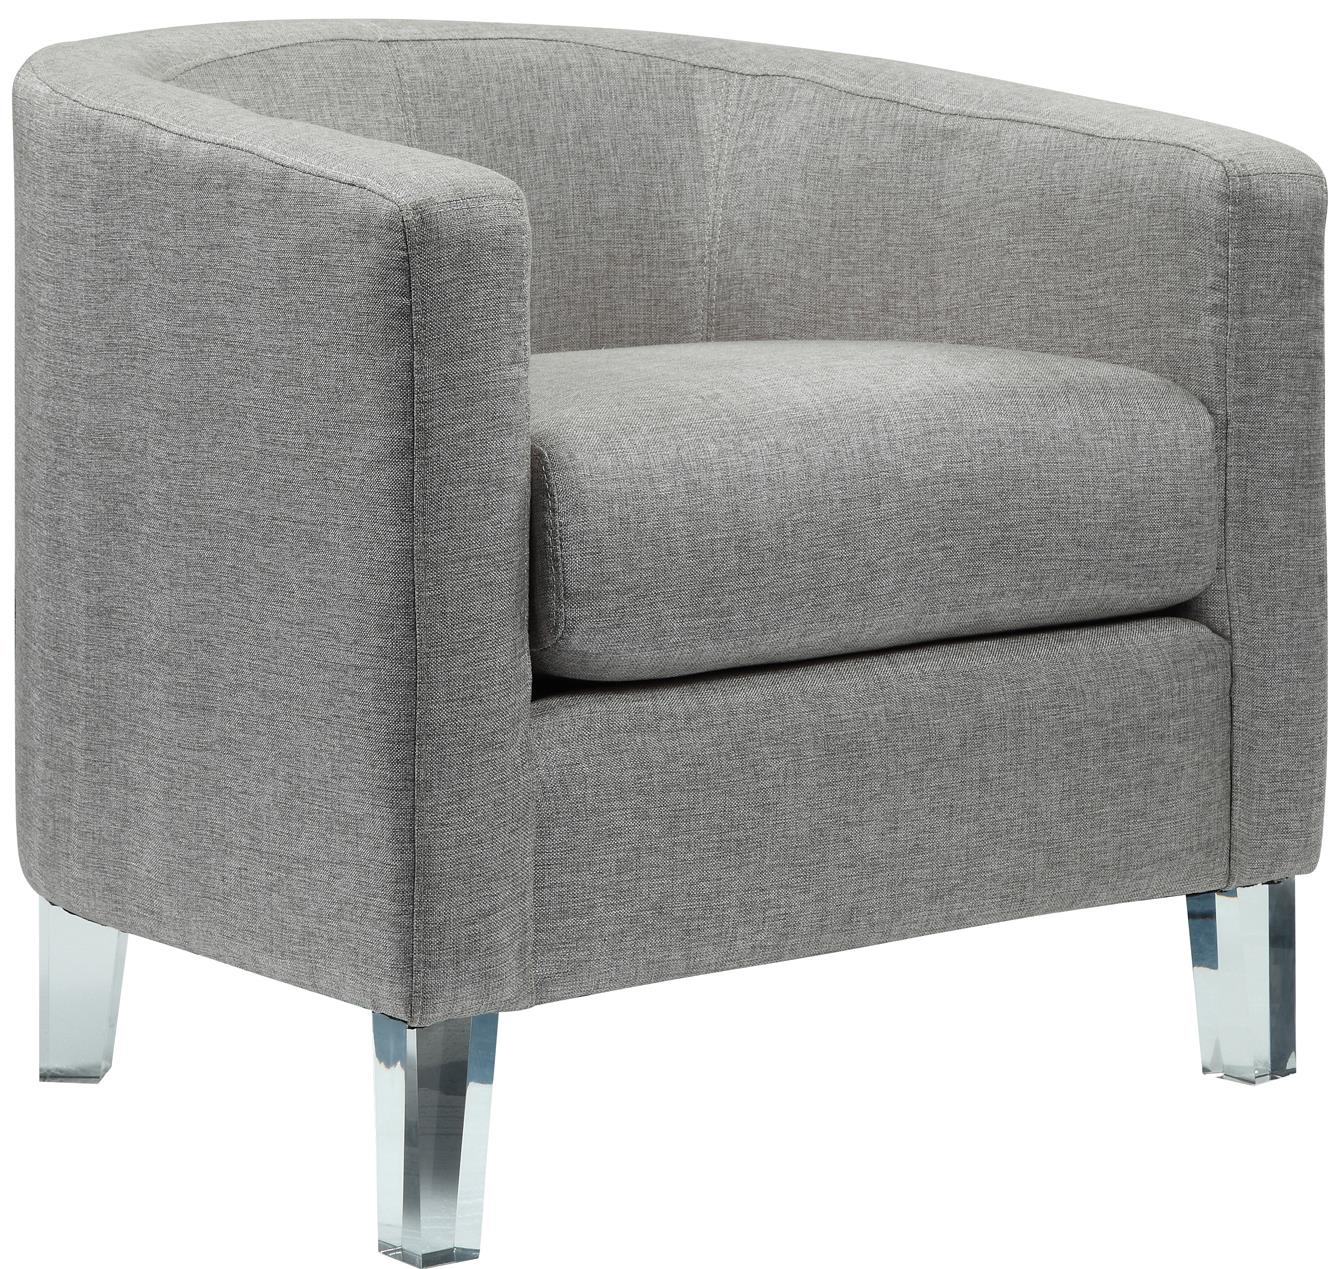 Elements International Durian Accent Chair - Item Number: U748xx109-Heirloom Gray